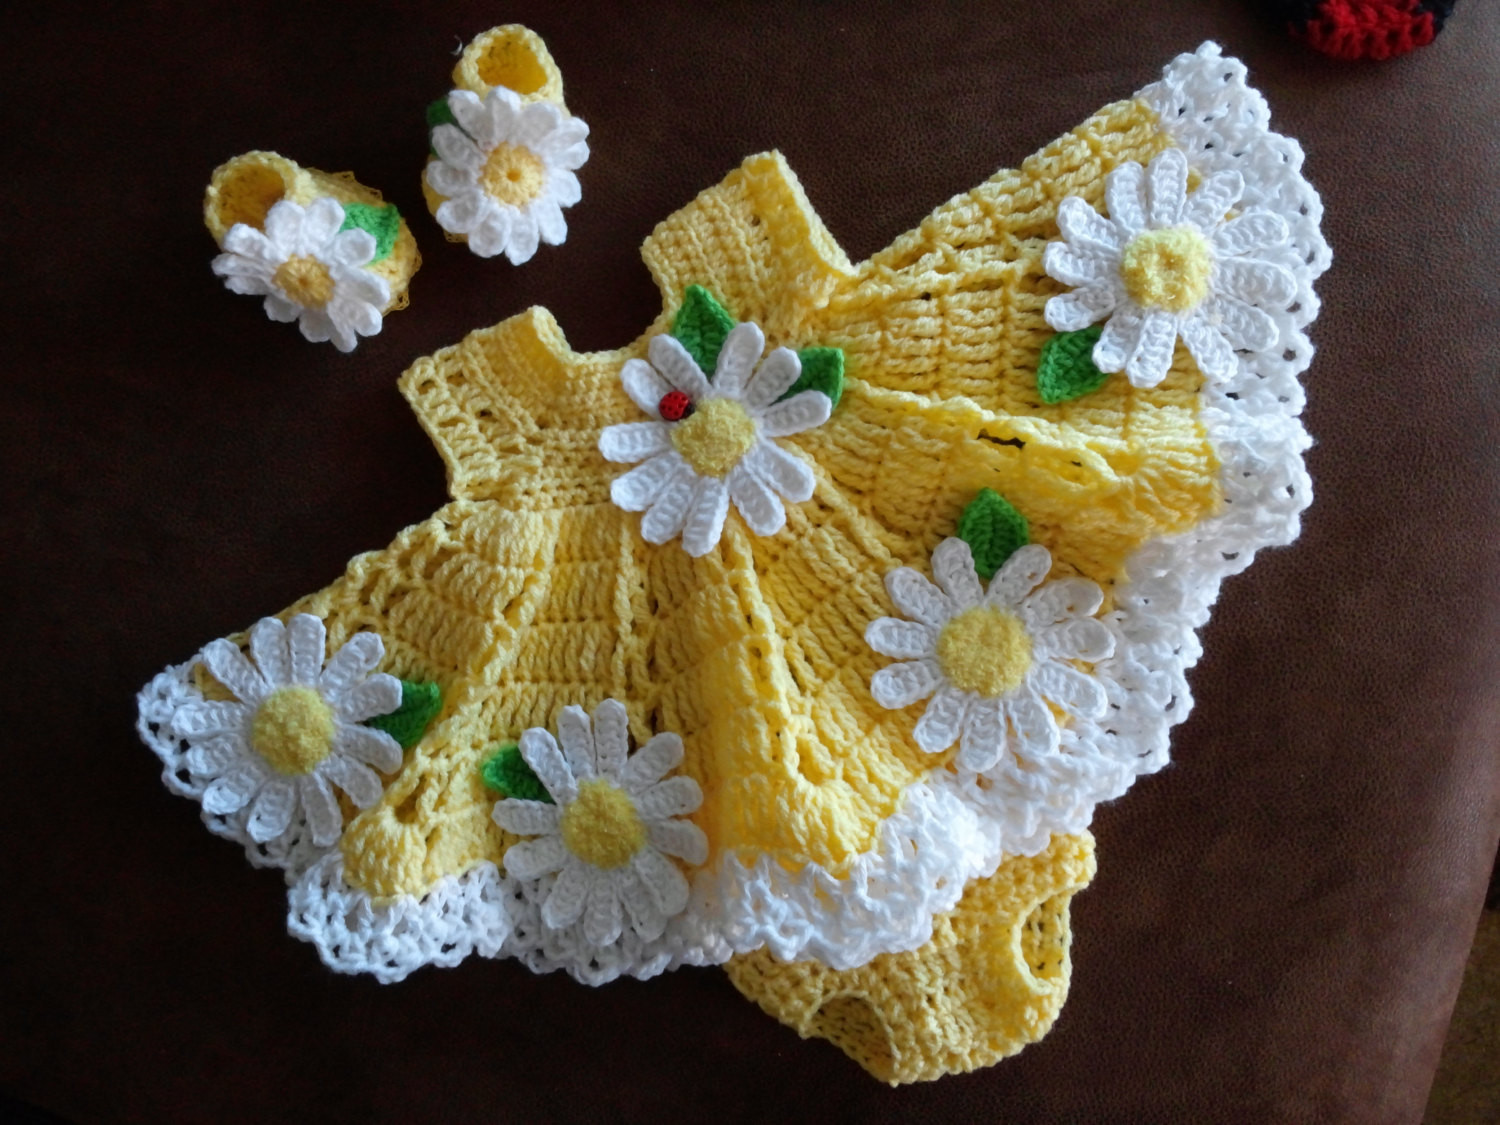 Inspirational Crochet Baby Dress Set with Daisies Crochet Baby Stuff Of Superb 43 Models Crochet Baby Stuff